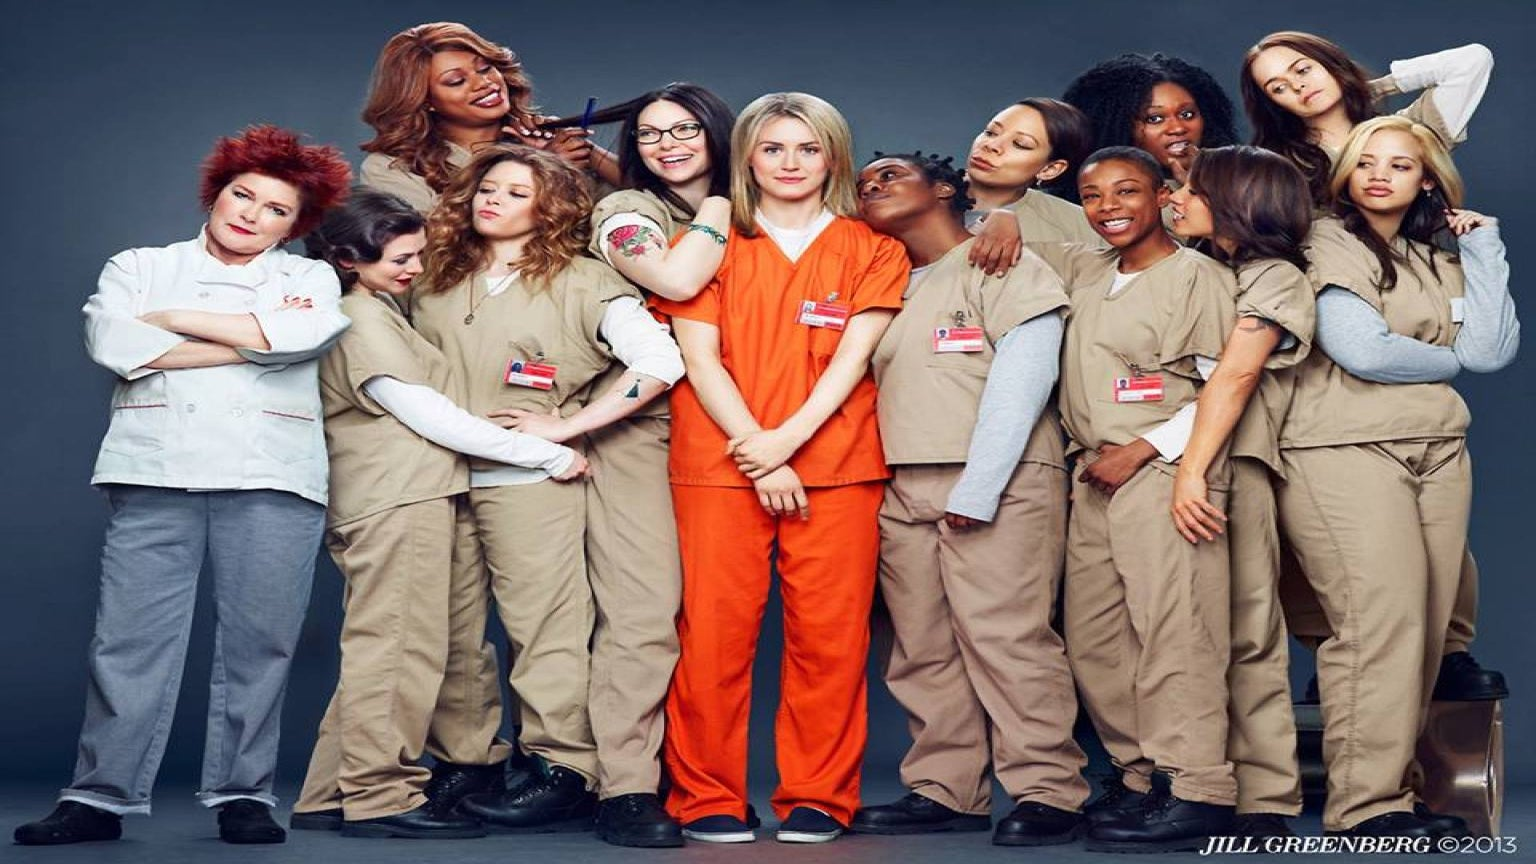 'Orange Is the New Black' Gets a June Release Date